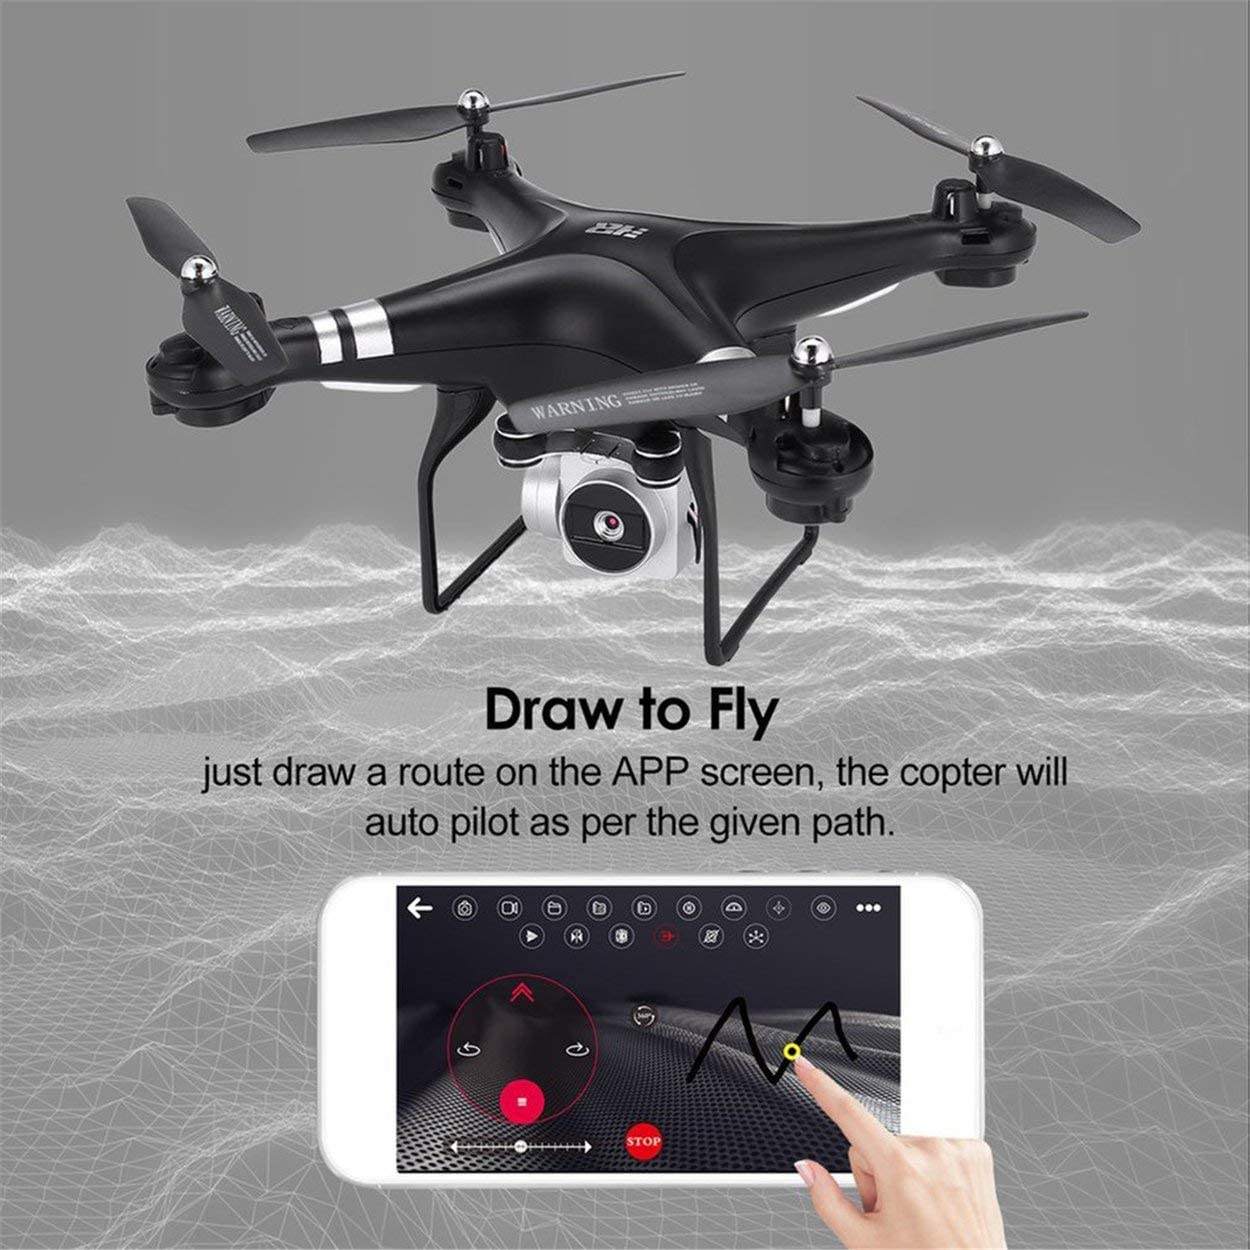 SH5H 2.4G FPV Drones RC Quadcopter with 3 Batteries 720P WiFi Camera Live Video Altitude Hold Headless Mode One Key Return Thress Batteries Black